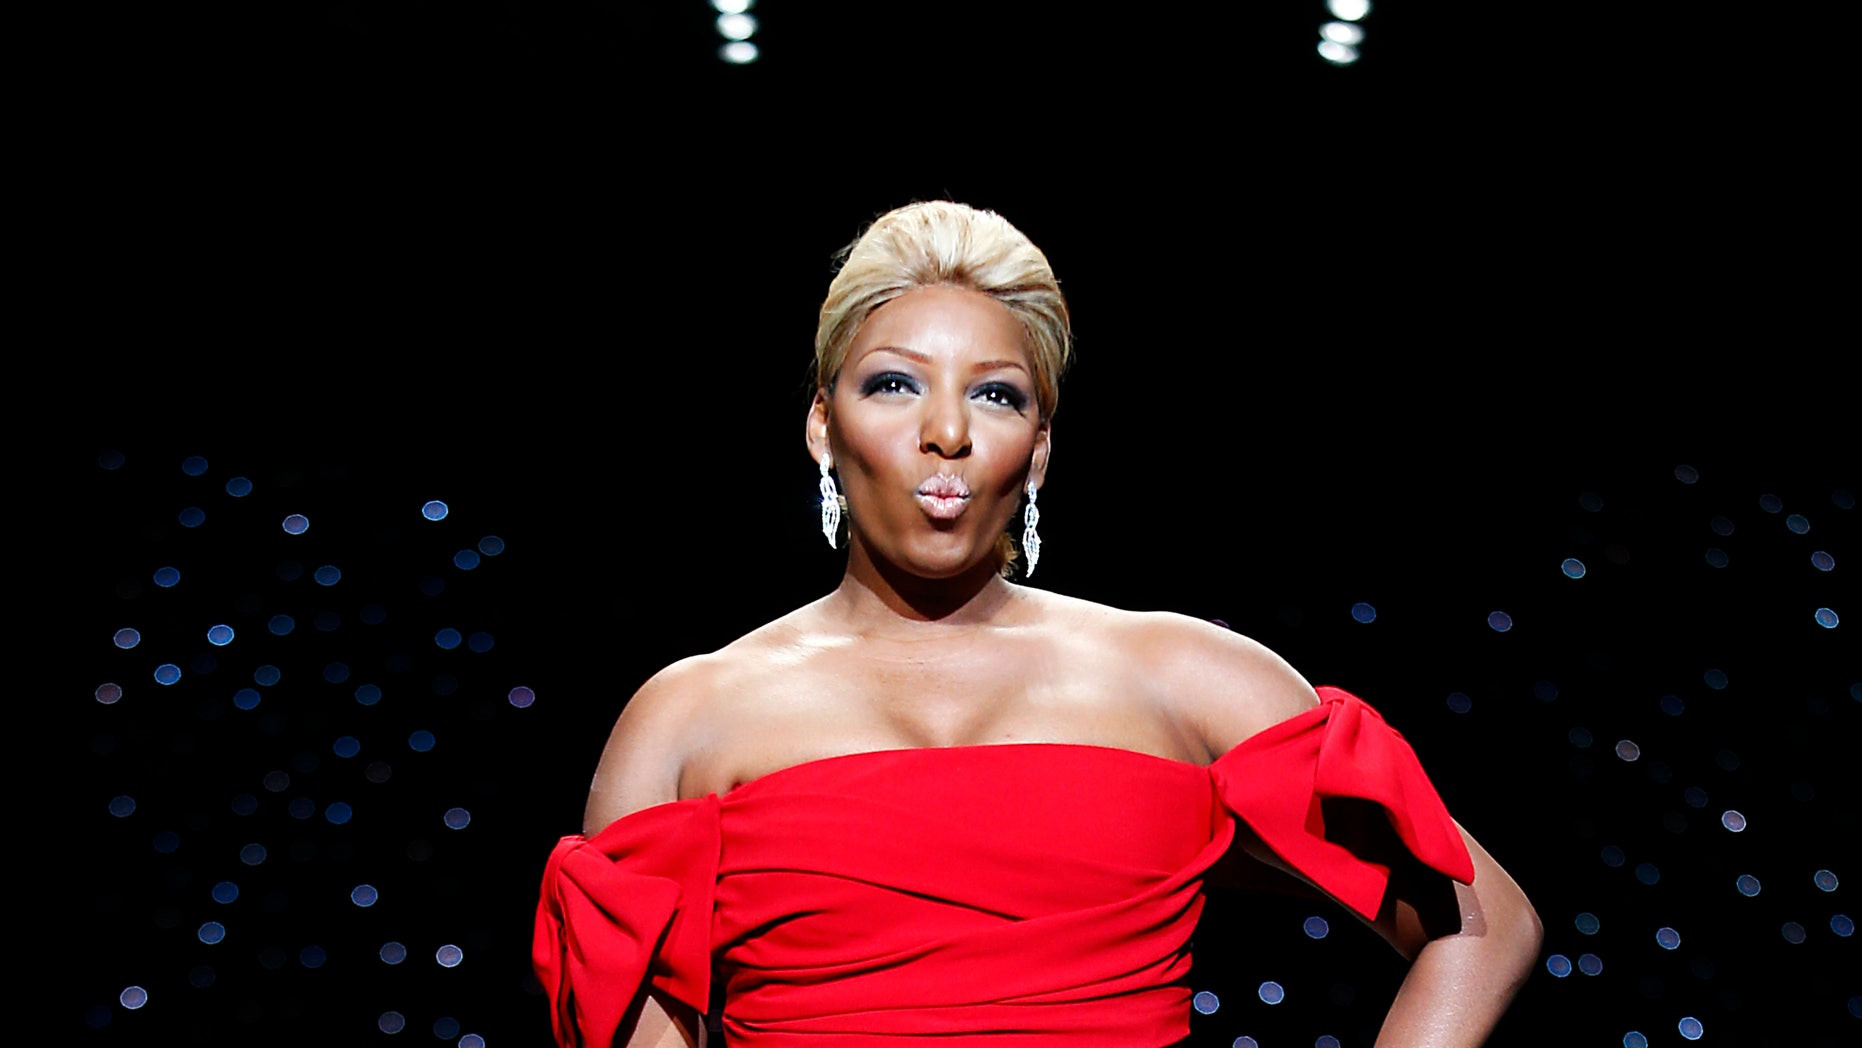 February 6, 2014. Actress Nene Leakes presents a creation by Dolce & Gabbana for the The Heart Truth Fall 2014 collection during New York Fashion Week.